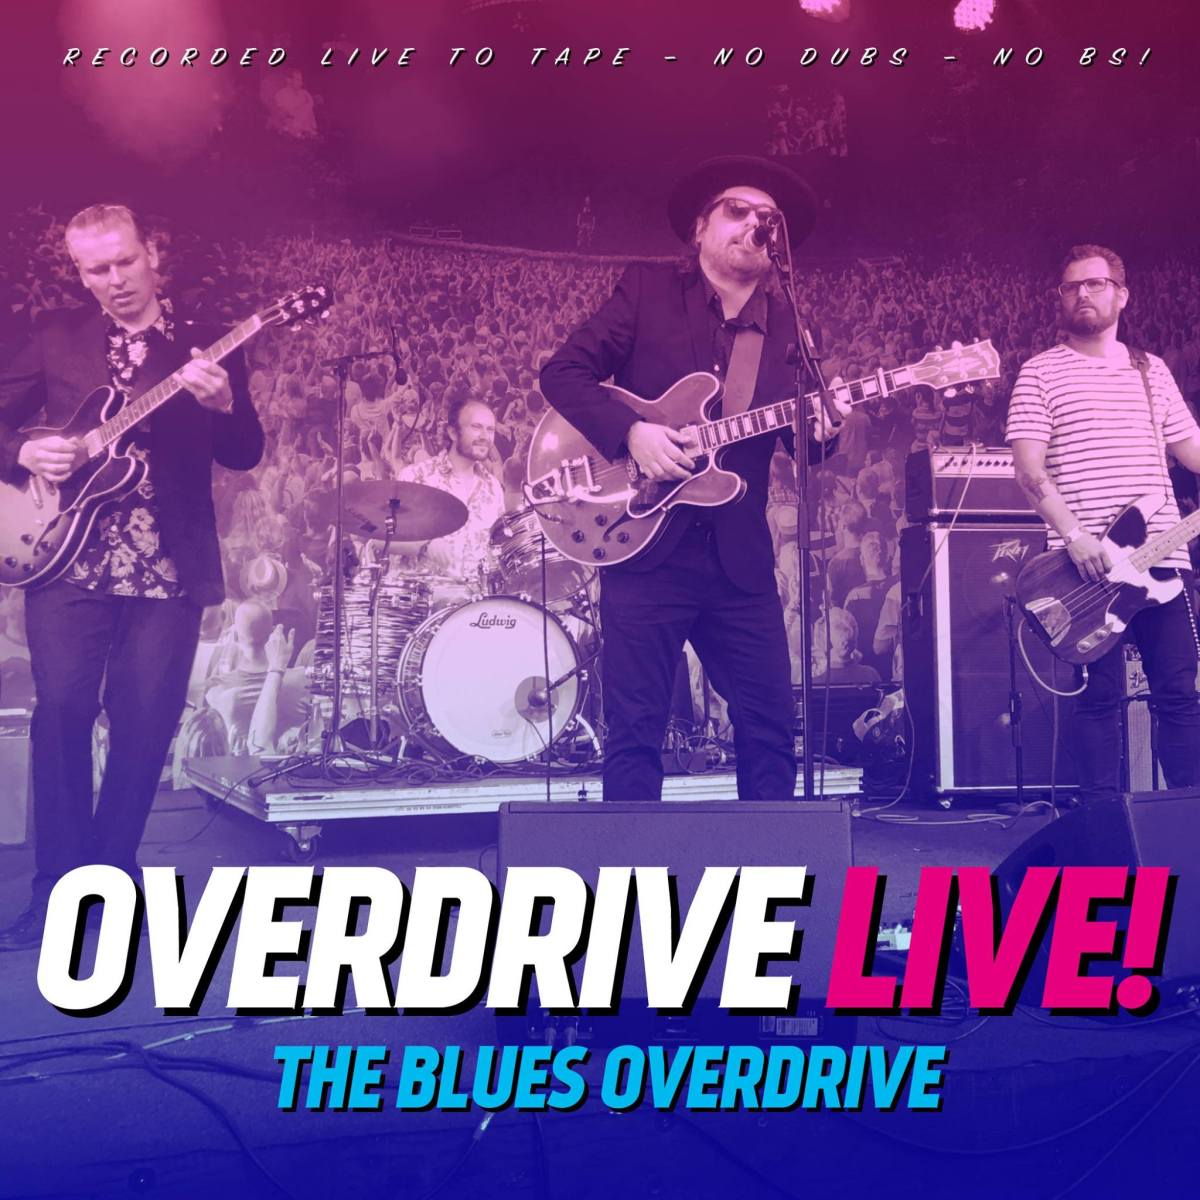 Anmeldelse: The Blues Overdrive: Overdrive live! (Gateway Music TBO-150517)